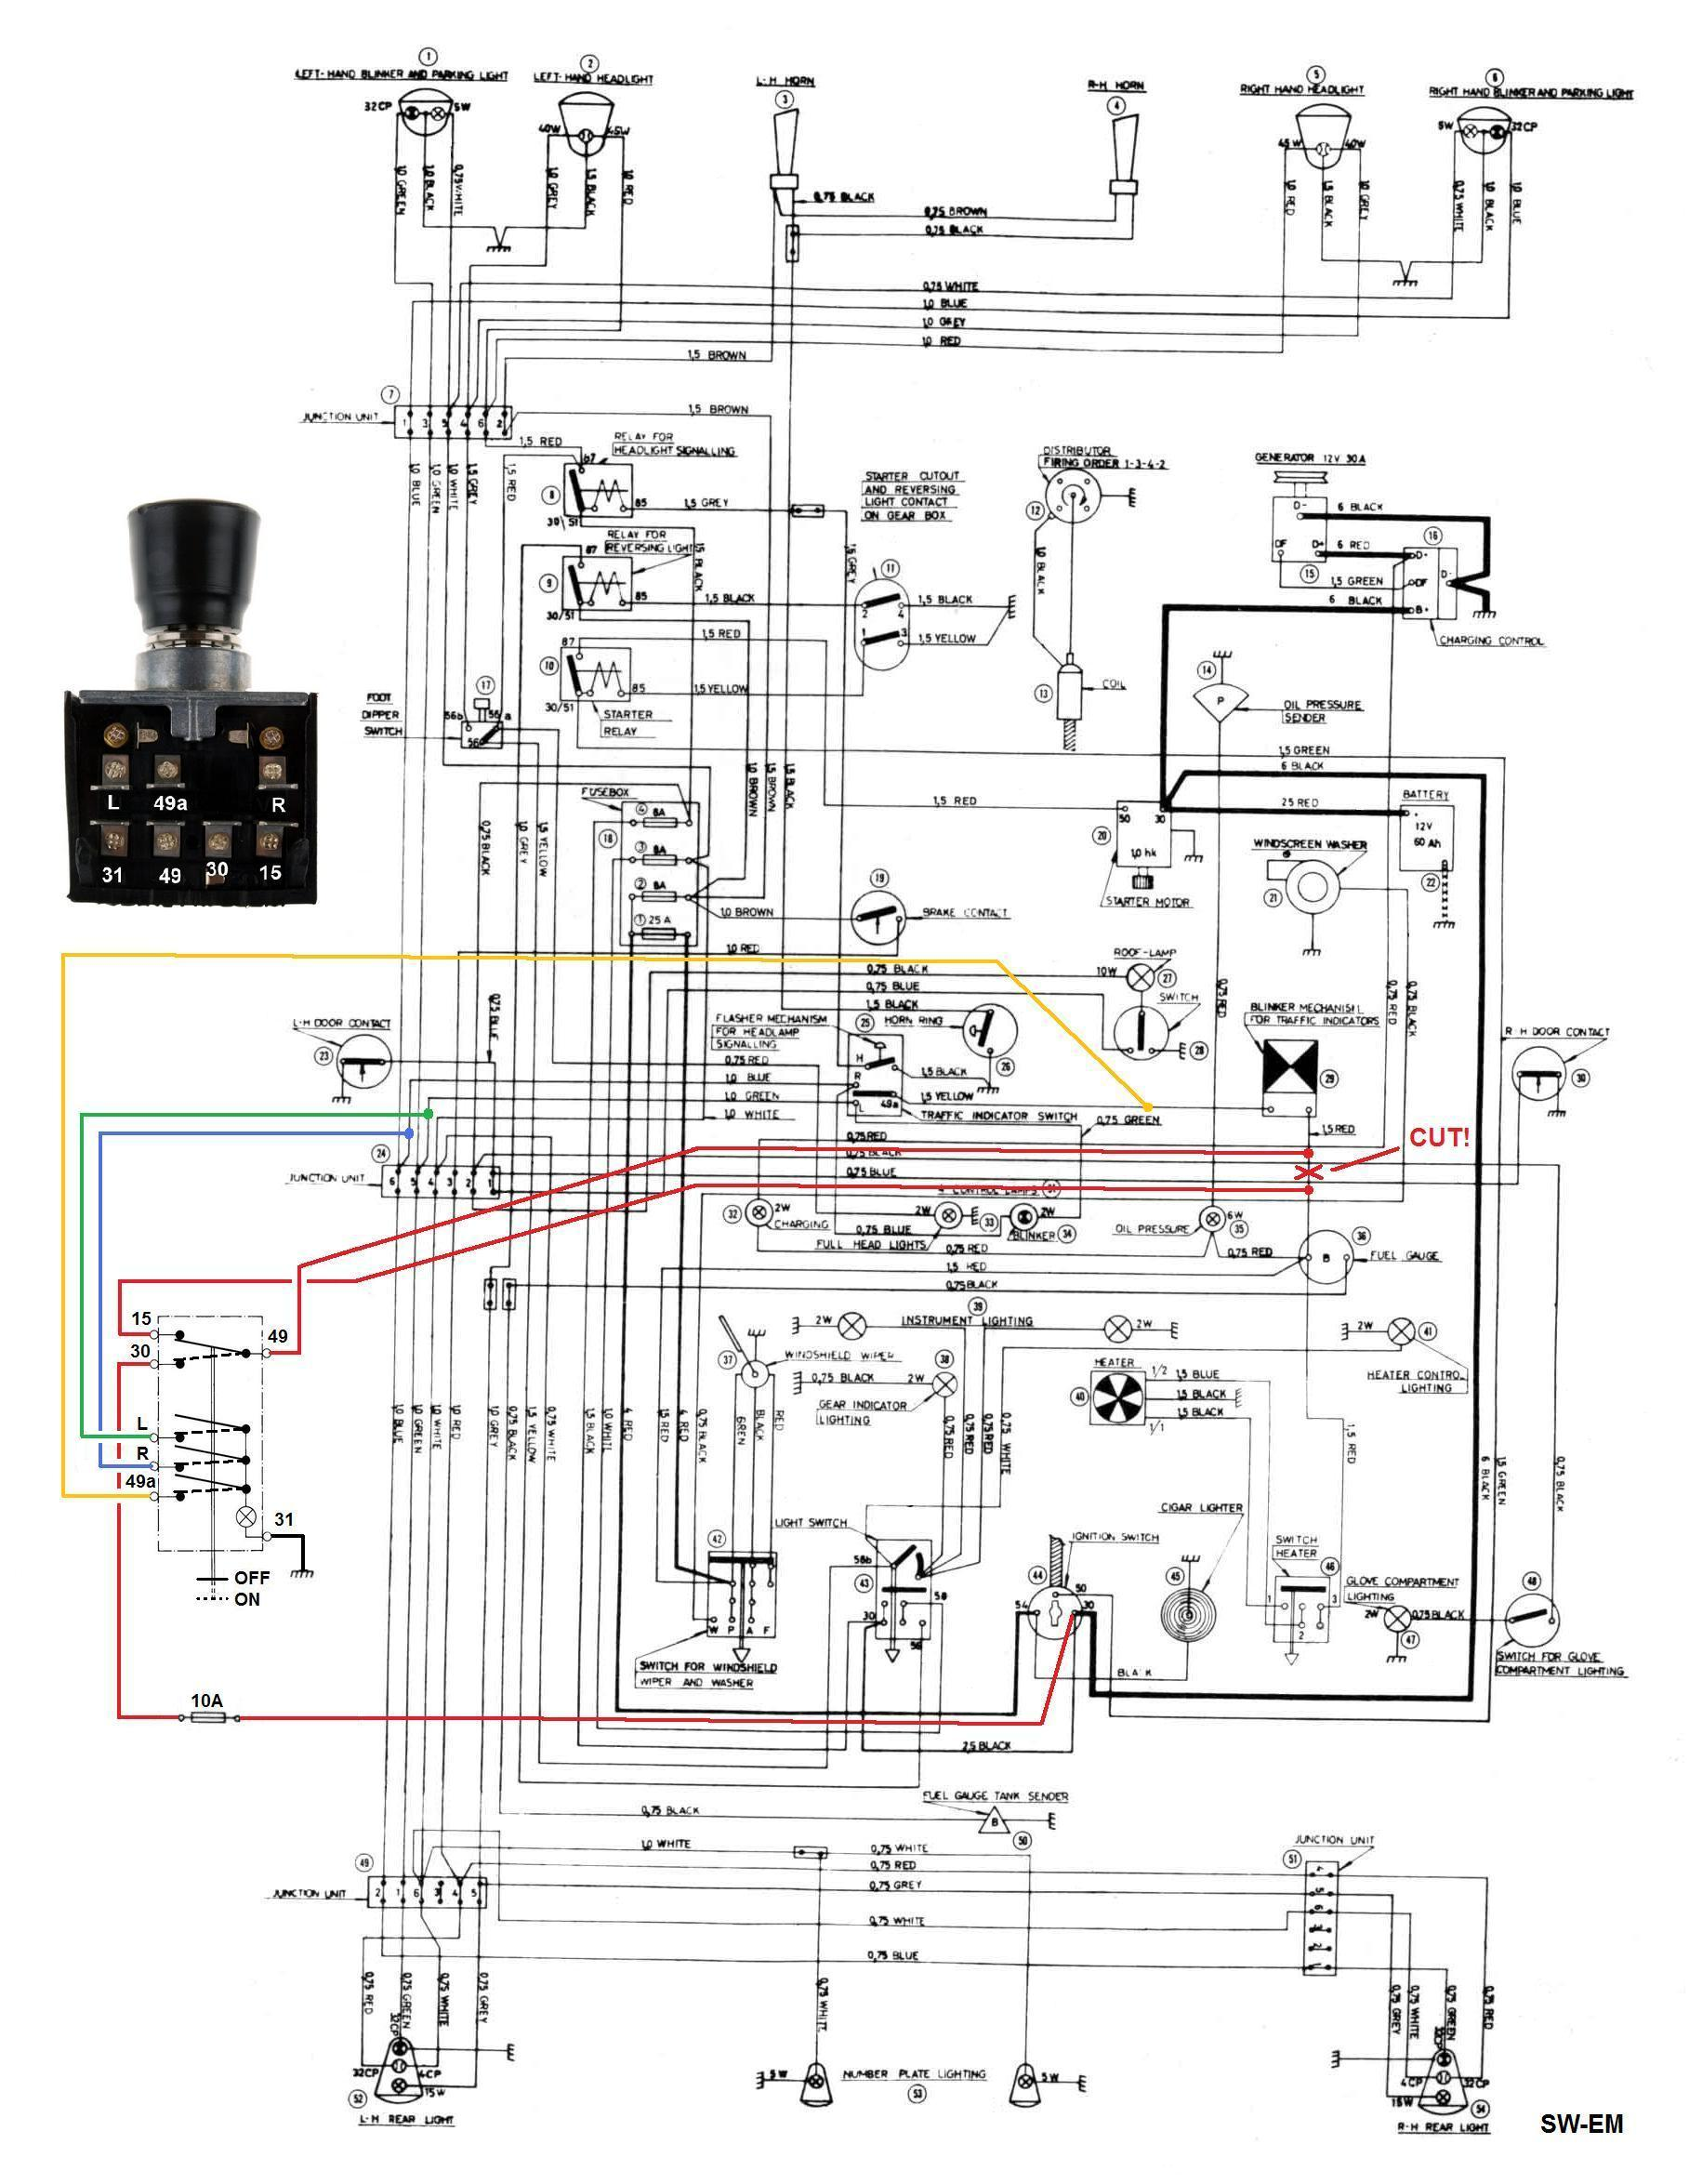 122S_Wiring_Diagram_Nesan_E_Flasher galls street thunder wiring diagram cb900 electrical diagram galls street thunder wiring diagram at nearapp.co